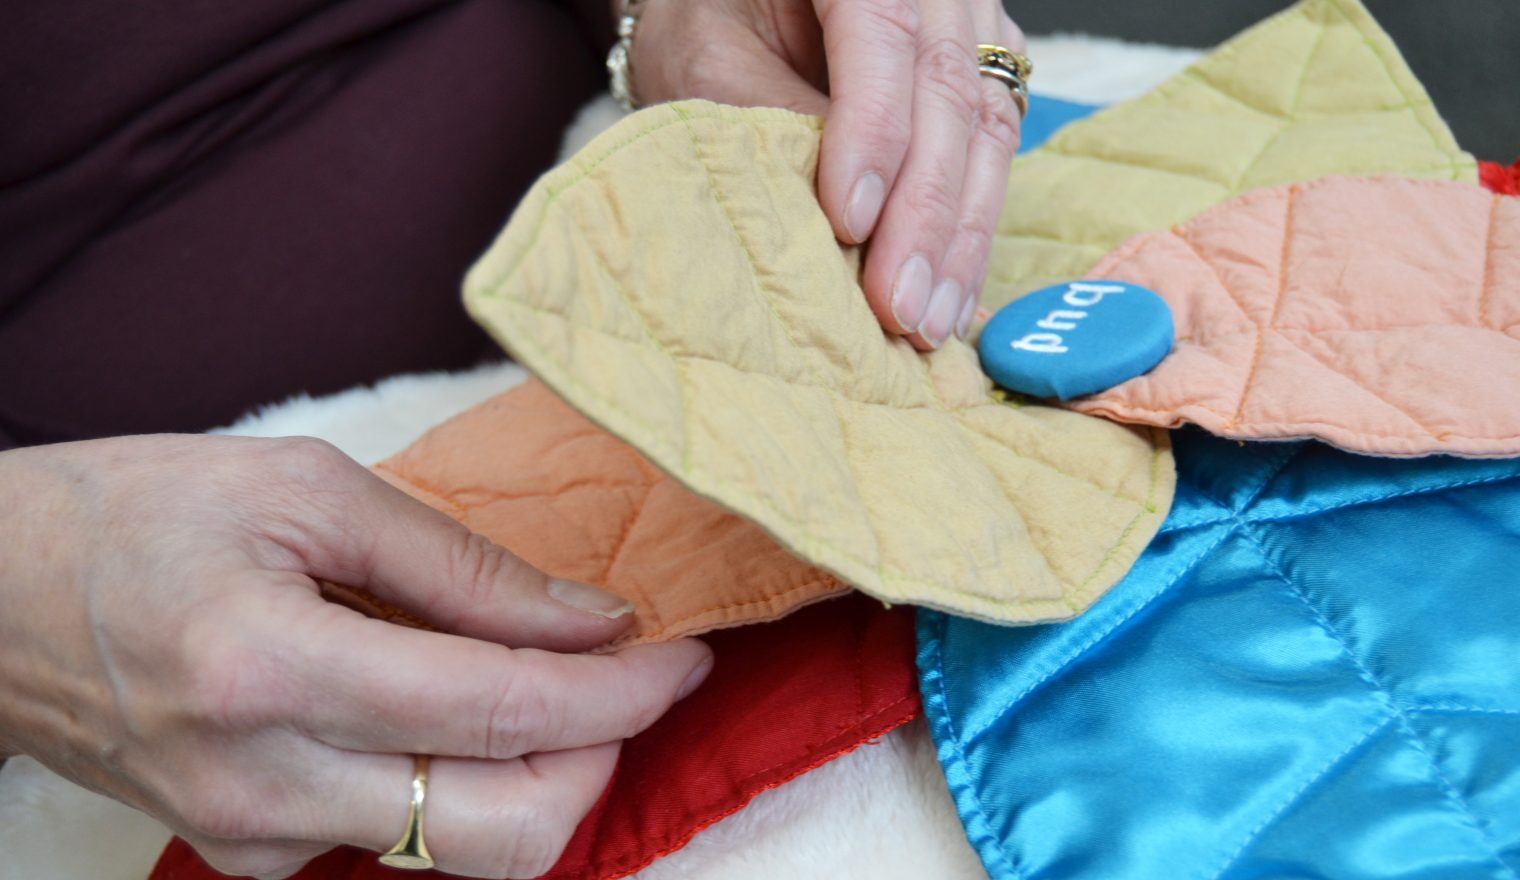 Two hands rearranging the fabric petals on a Bud sensory cushion